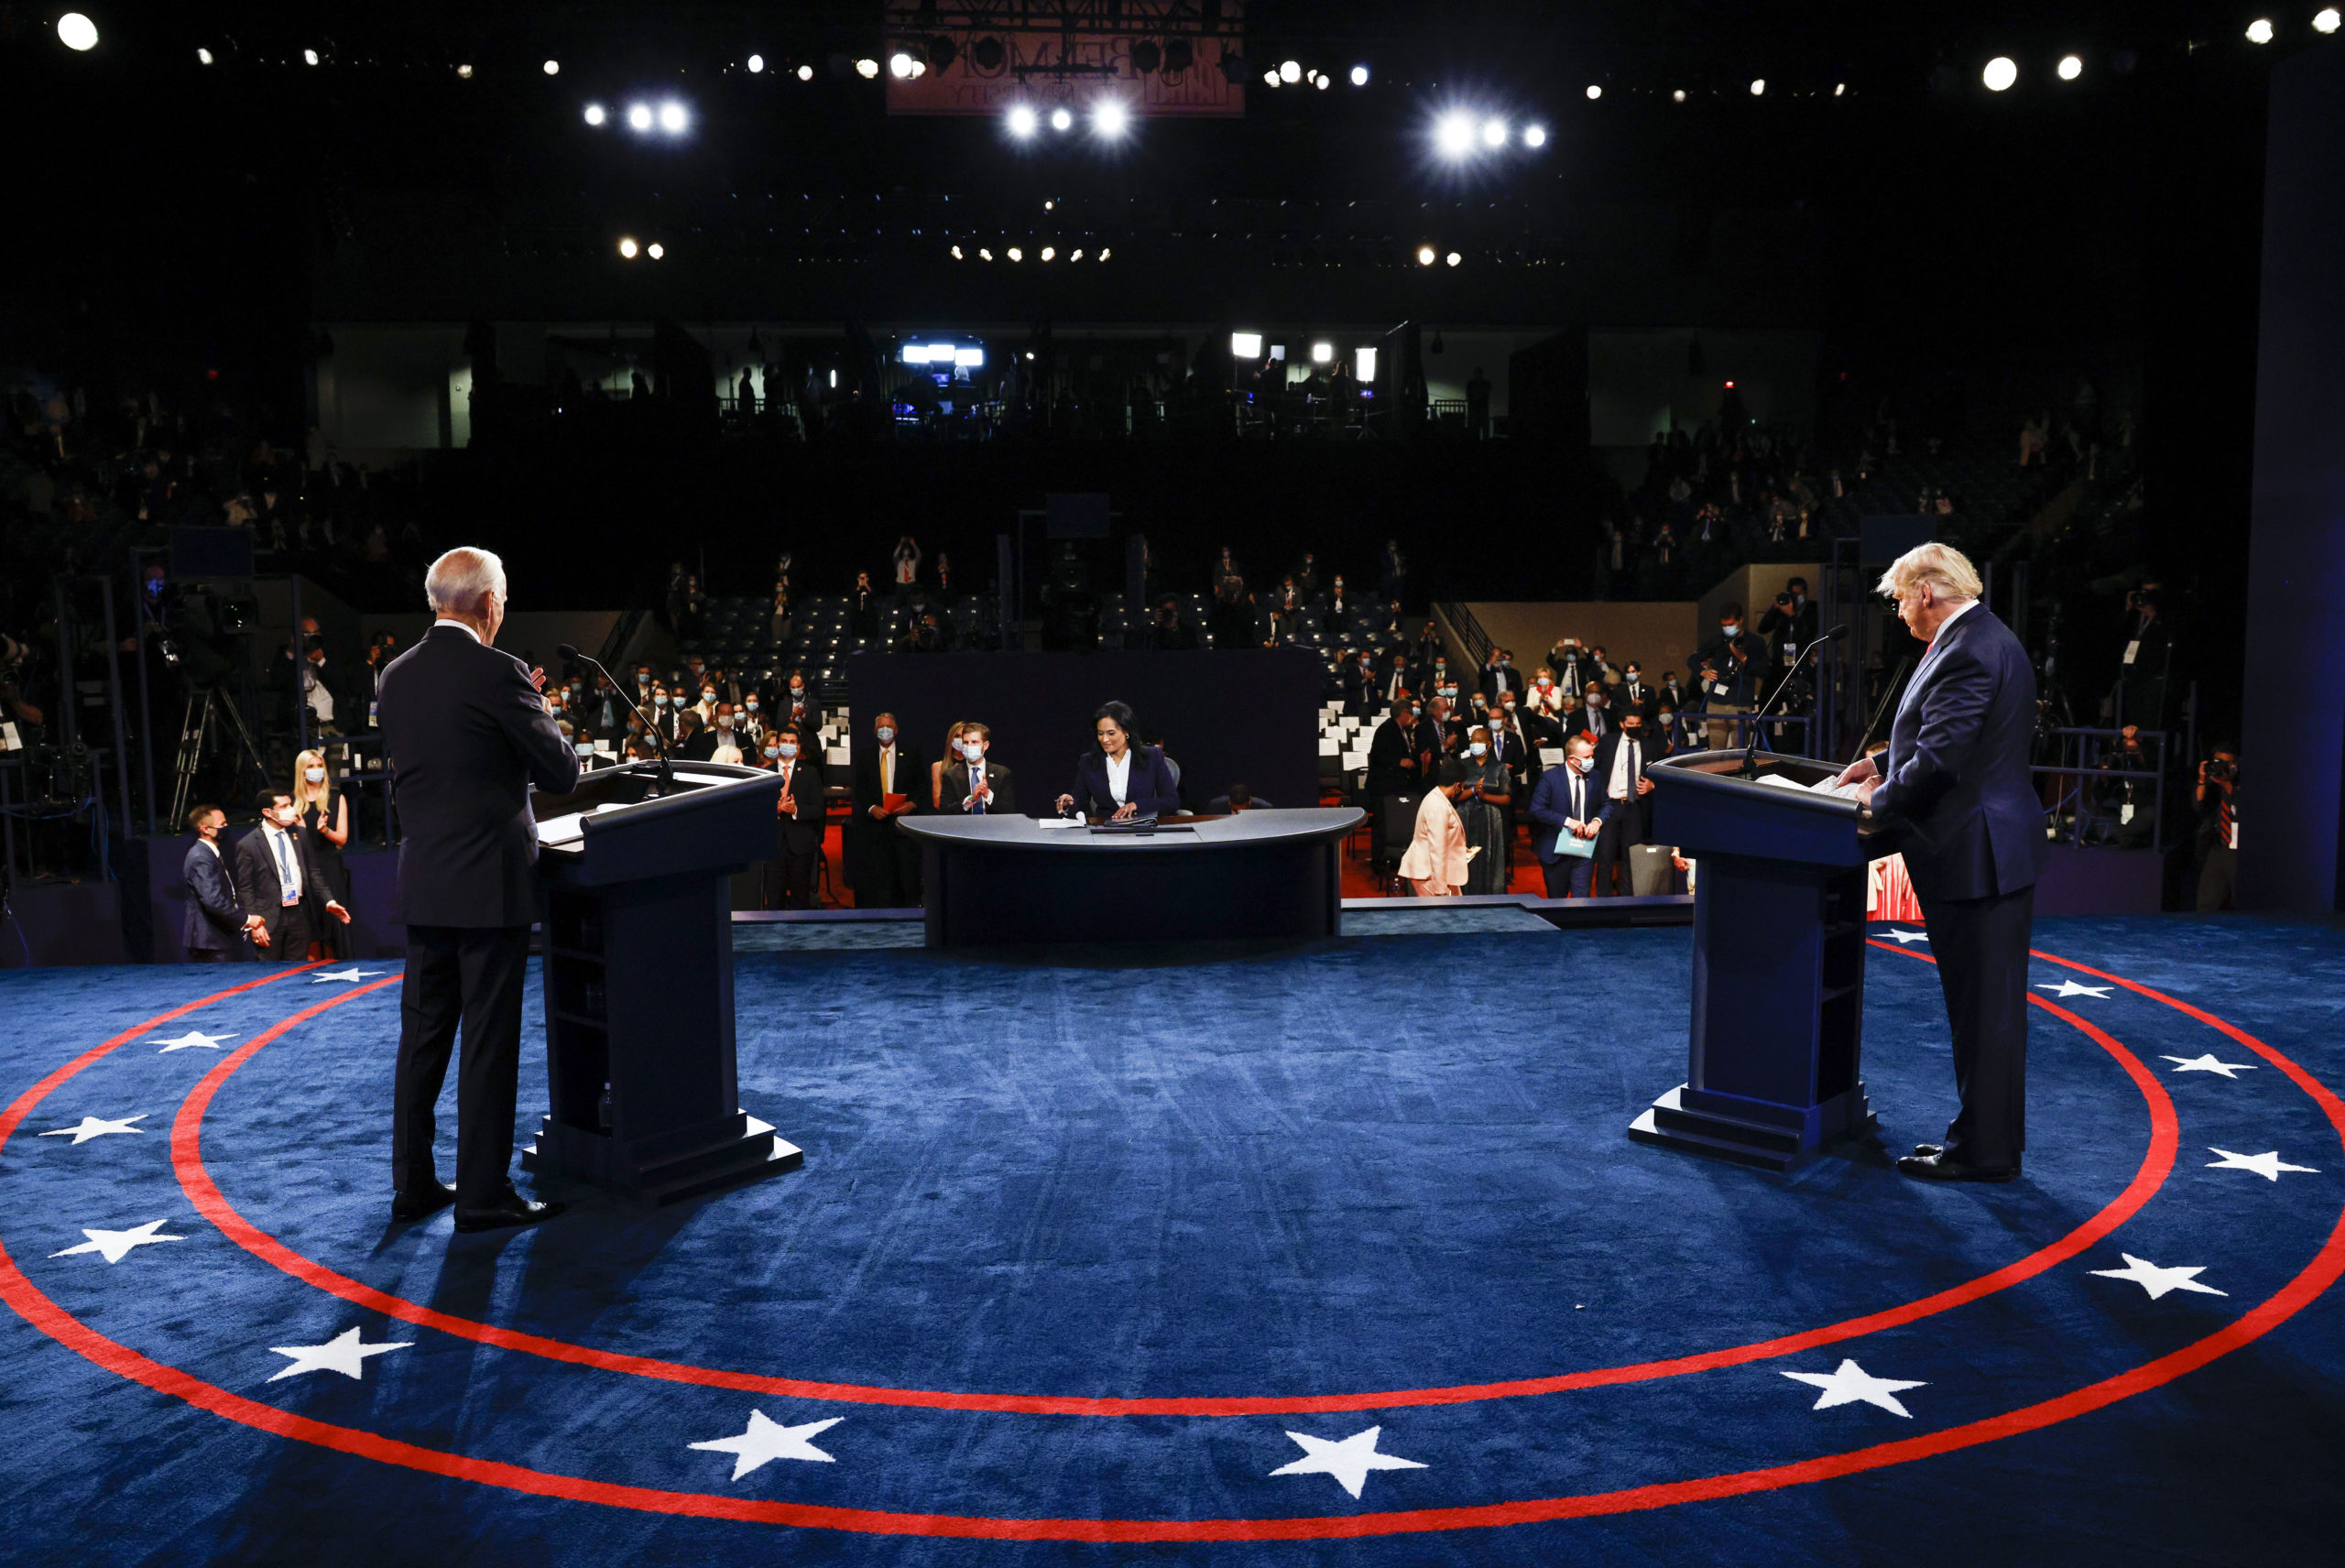 President Donald Trump and Democratic presidential nominee Joe Biden participate in the final presidential debate at Belmont University on Oct. 22. (Jim Bourg-Pool/Getty Images)